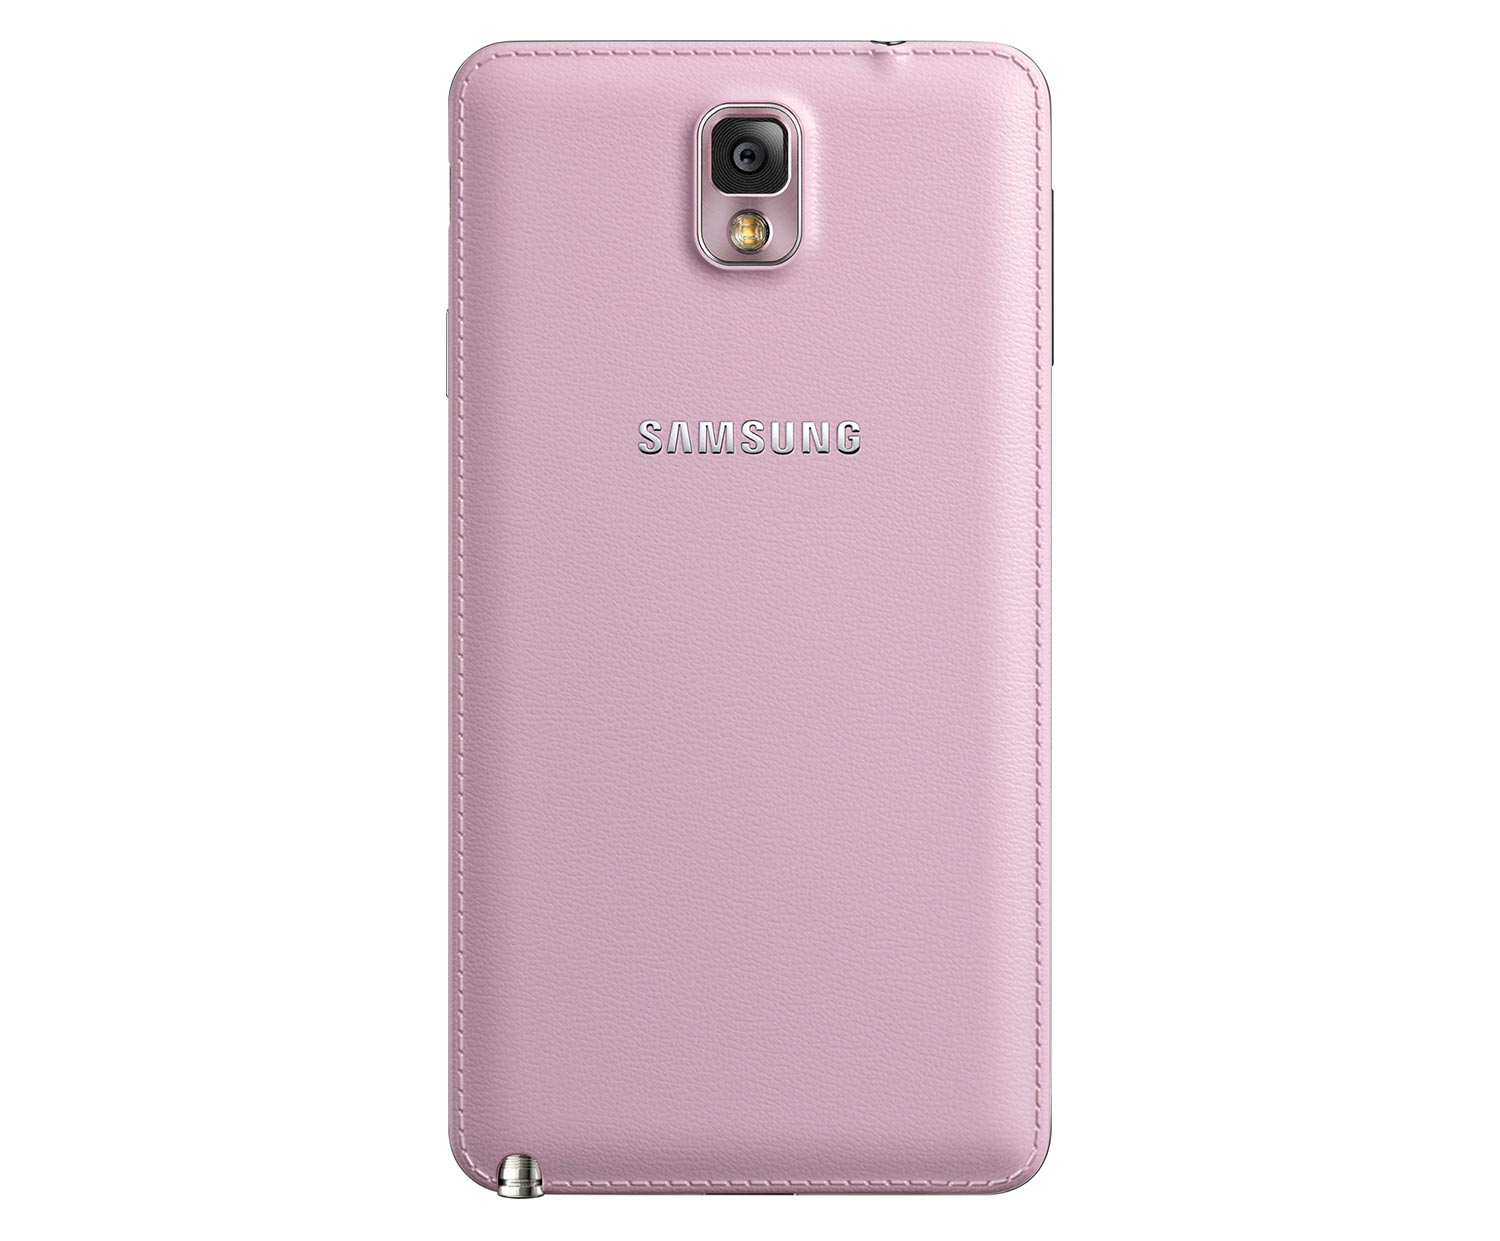 samsung galaxy note3 32 gb pink. Black Bedroom Furniture Sets. Home Design Ideas